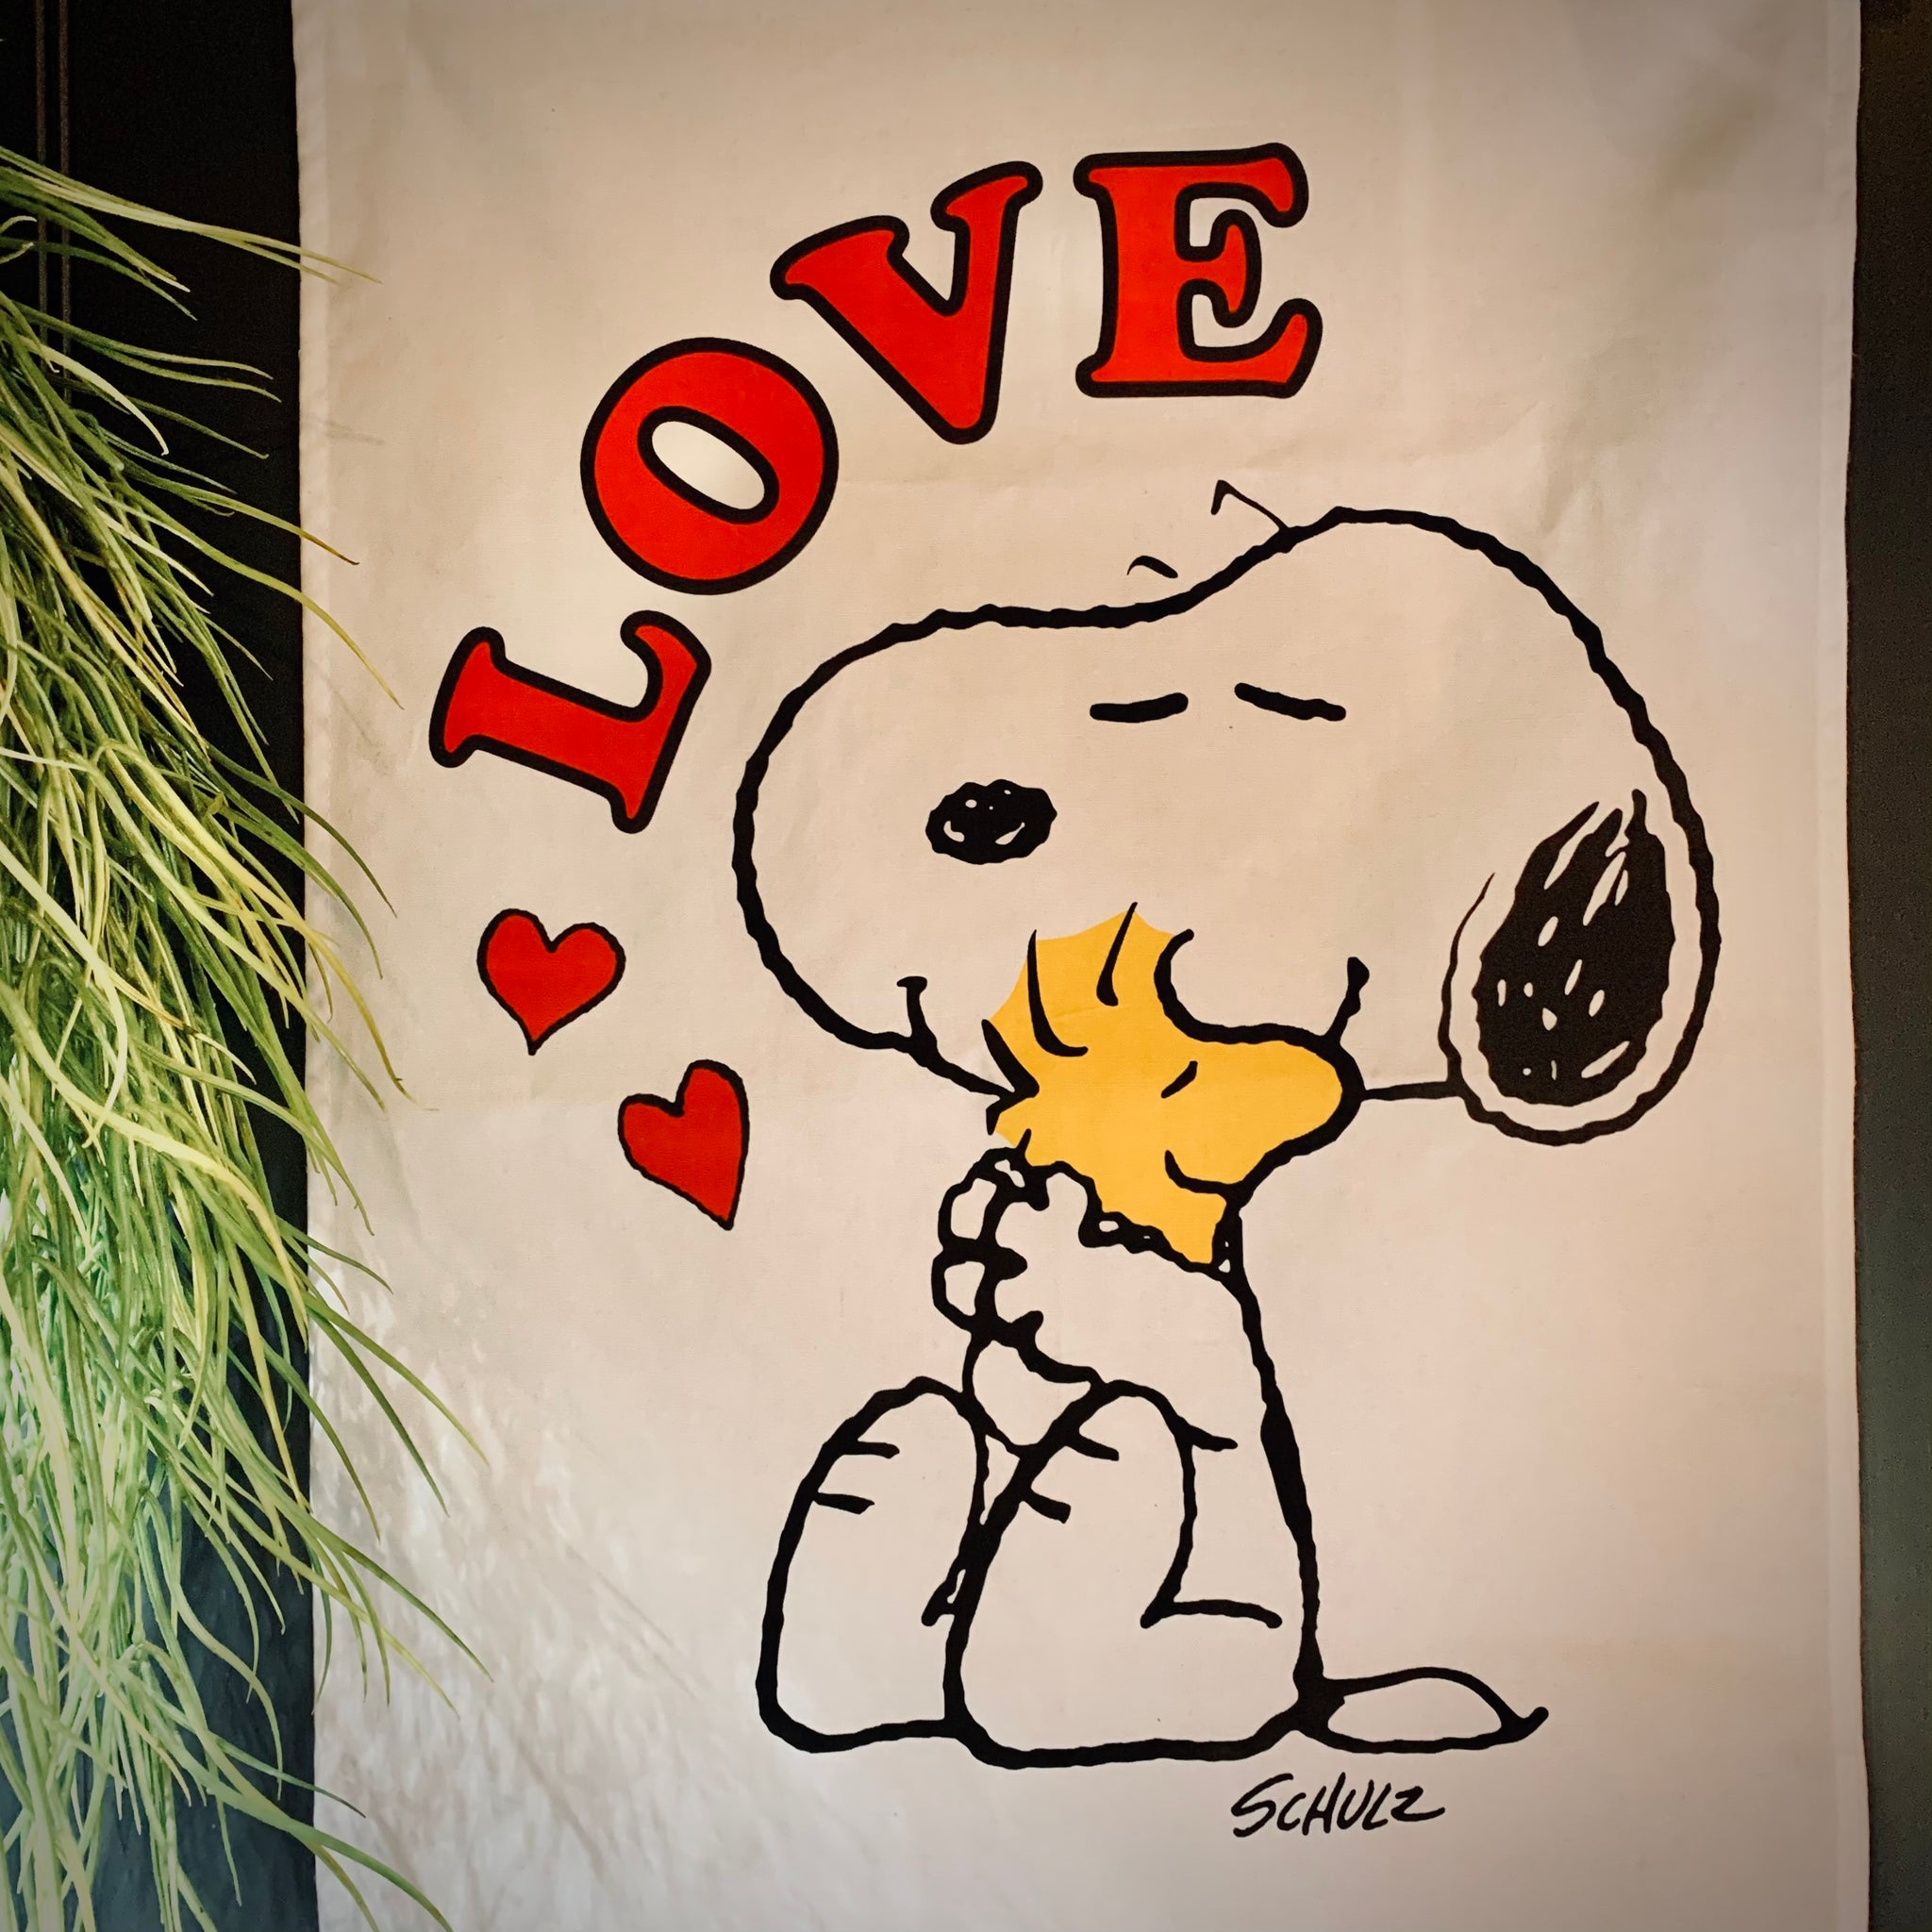 Peanuts (Snoopy) Tea Towel: 'Love' - mylesfromhome.co.uk